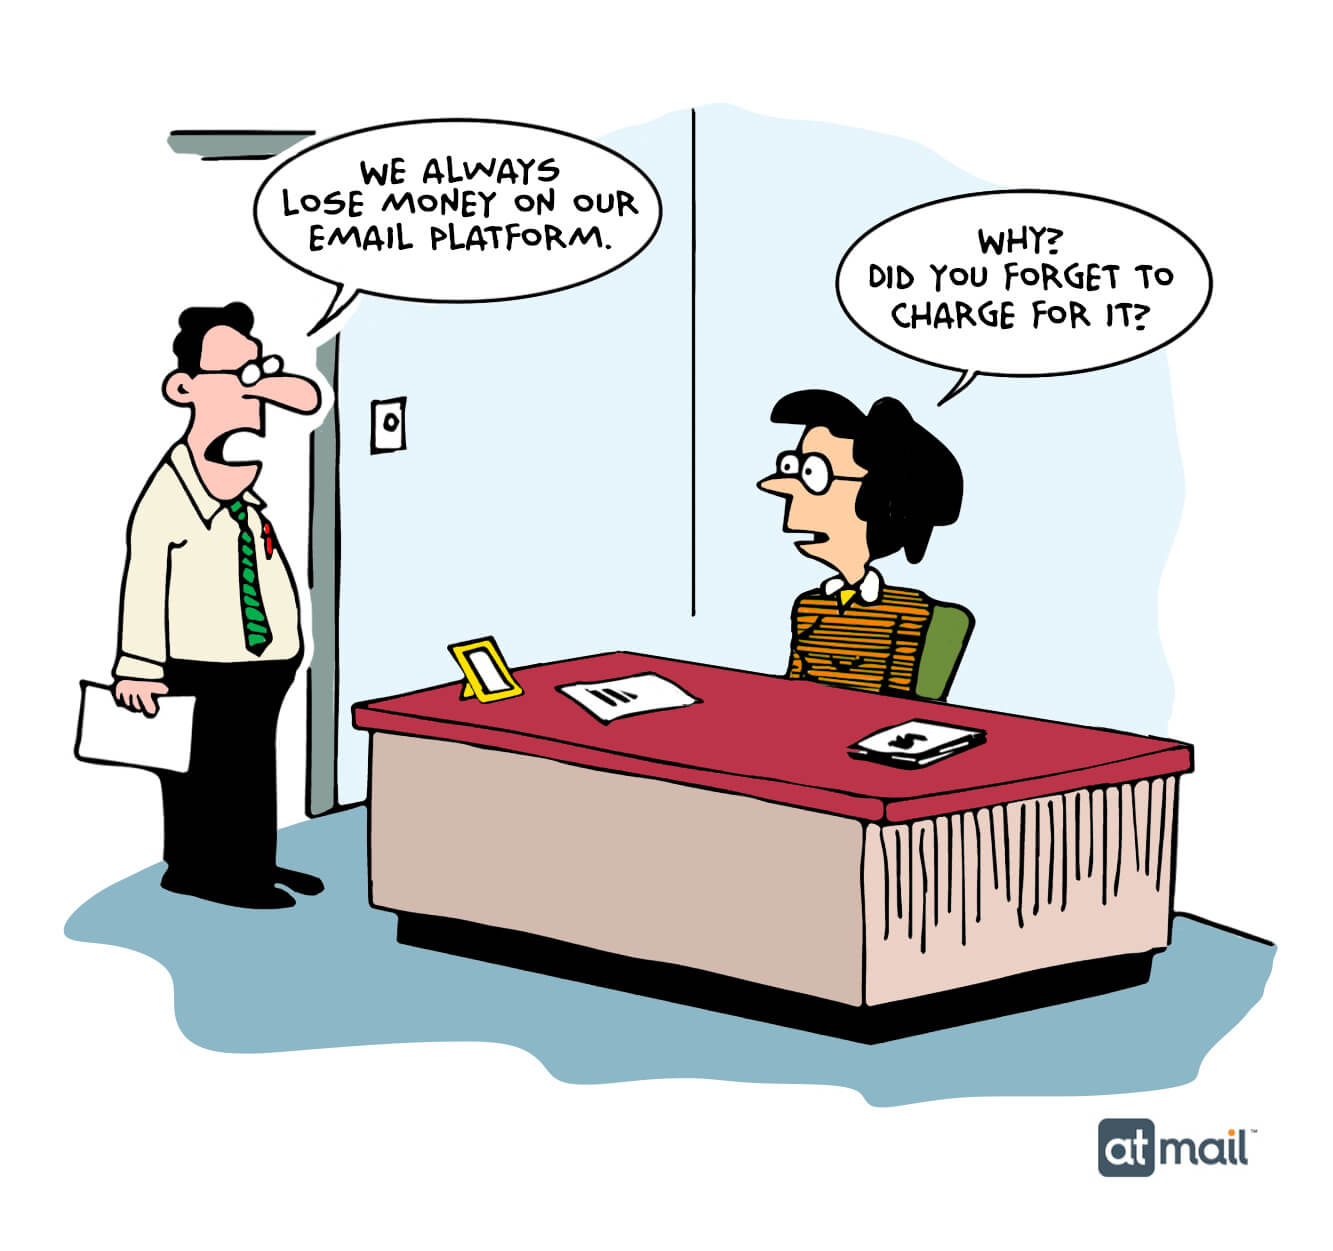 atmail - email pricing - email cartoon - copyright atmail pty ltd 2020